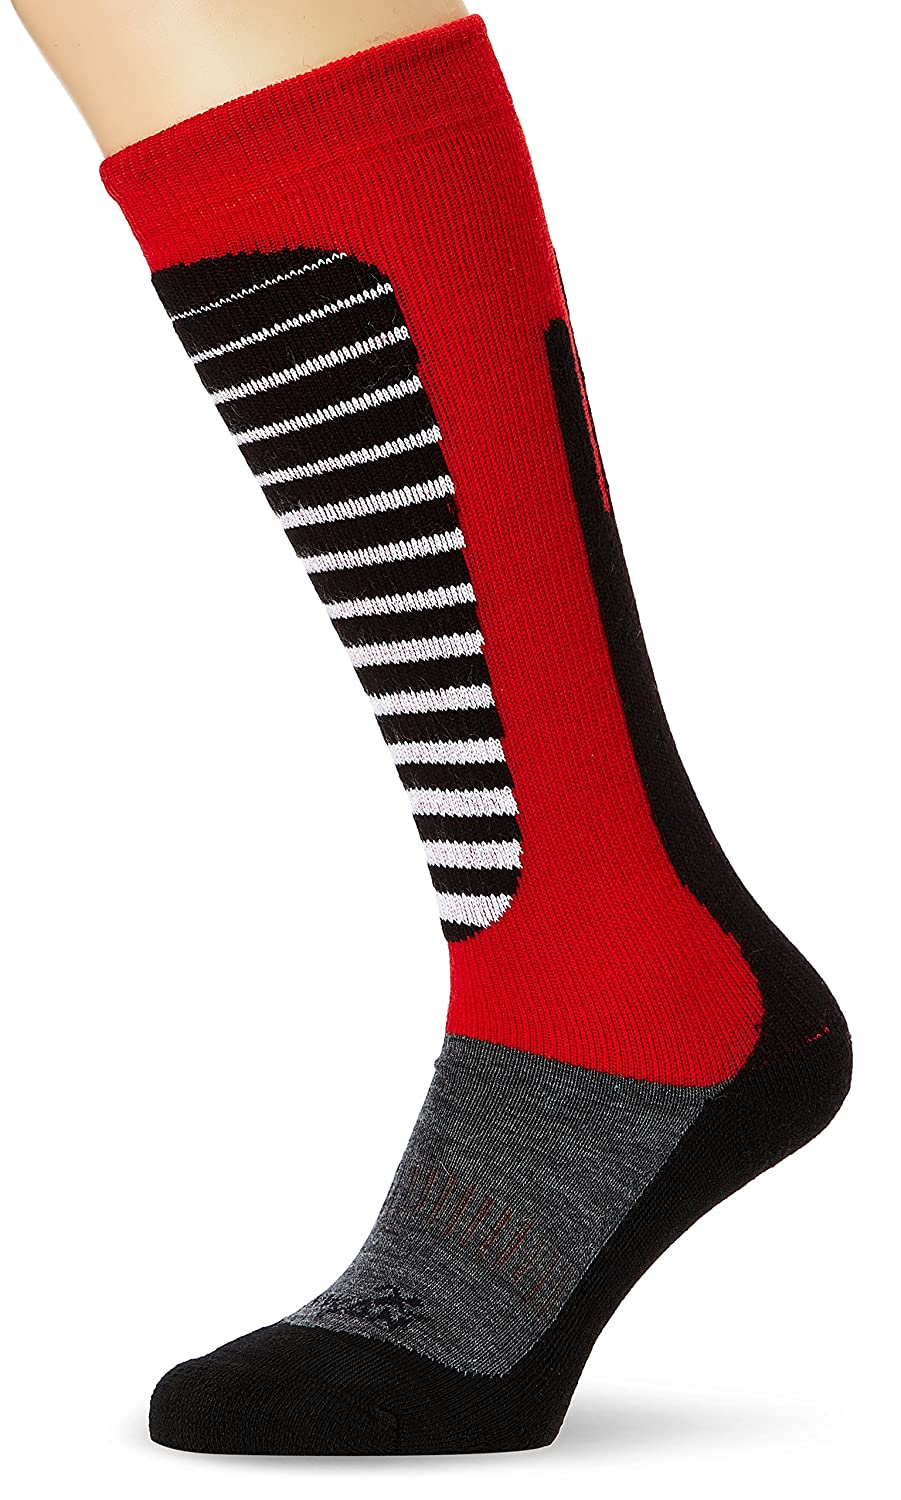 Rywan Mi-bas Rywarm Chaussettes Anthracite/Rouge FR